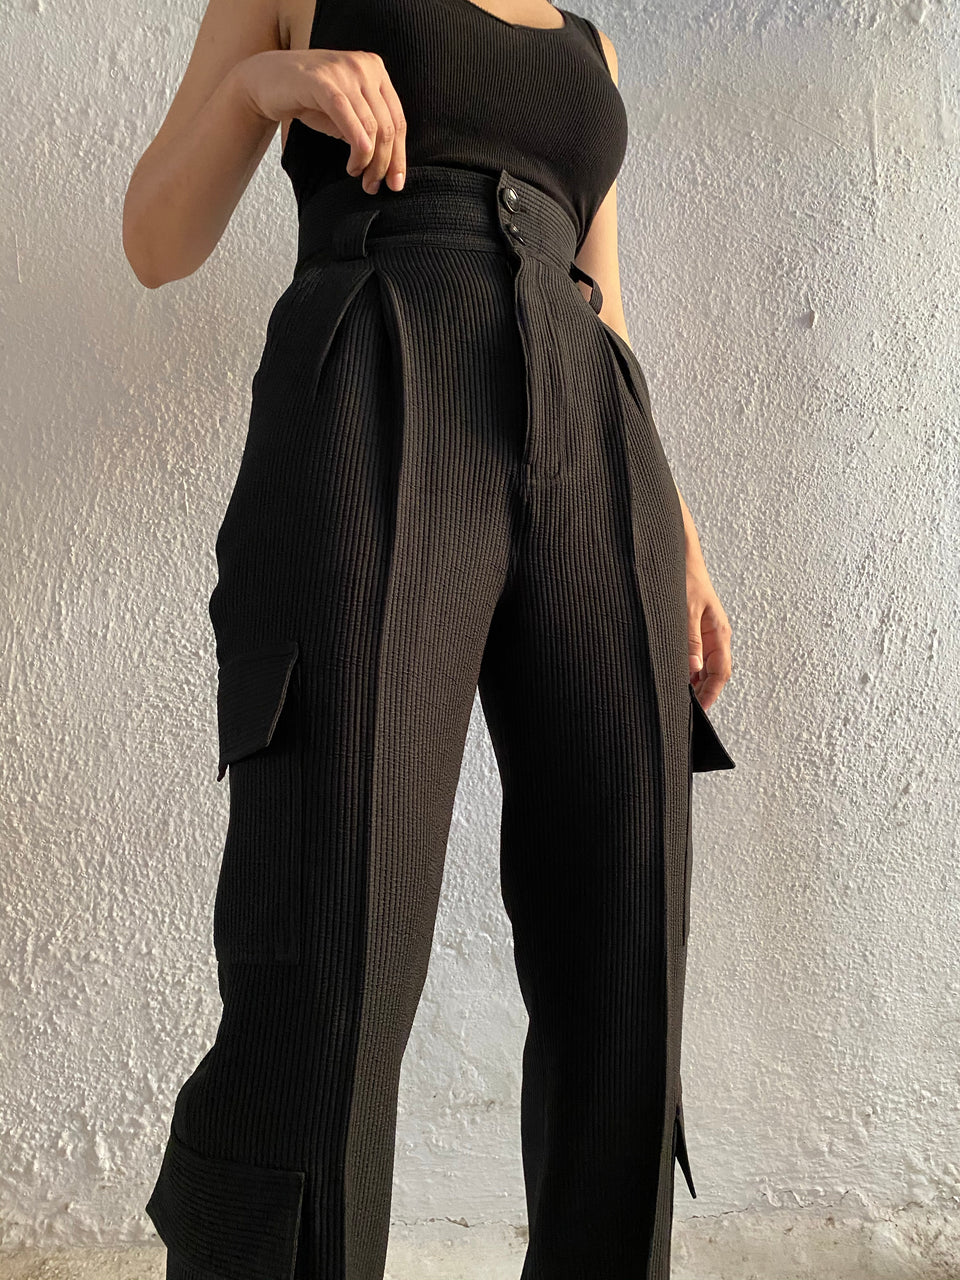 TEXTURED PANTS IN BLACK [UNISEX]